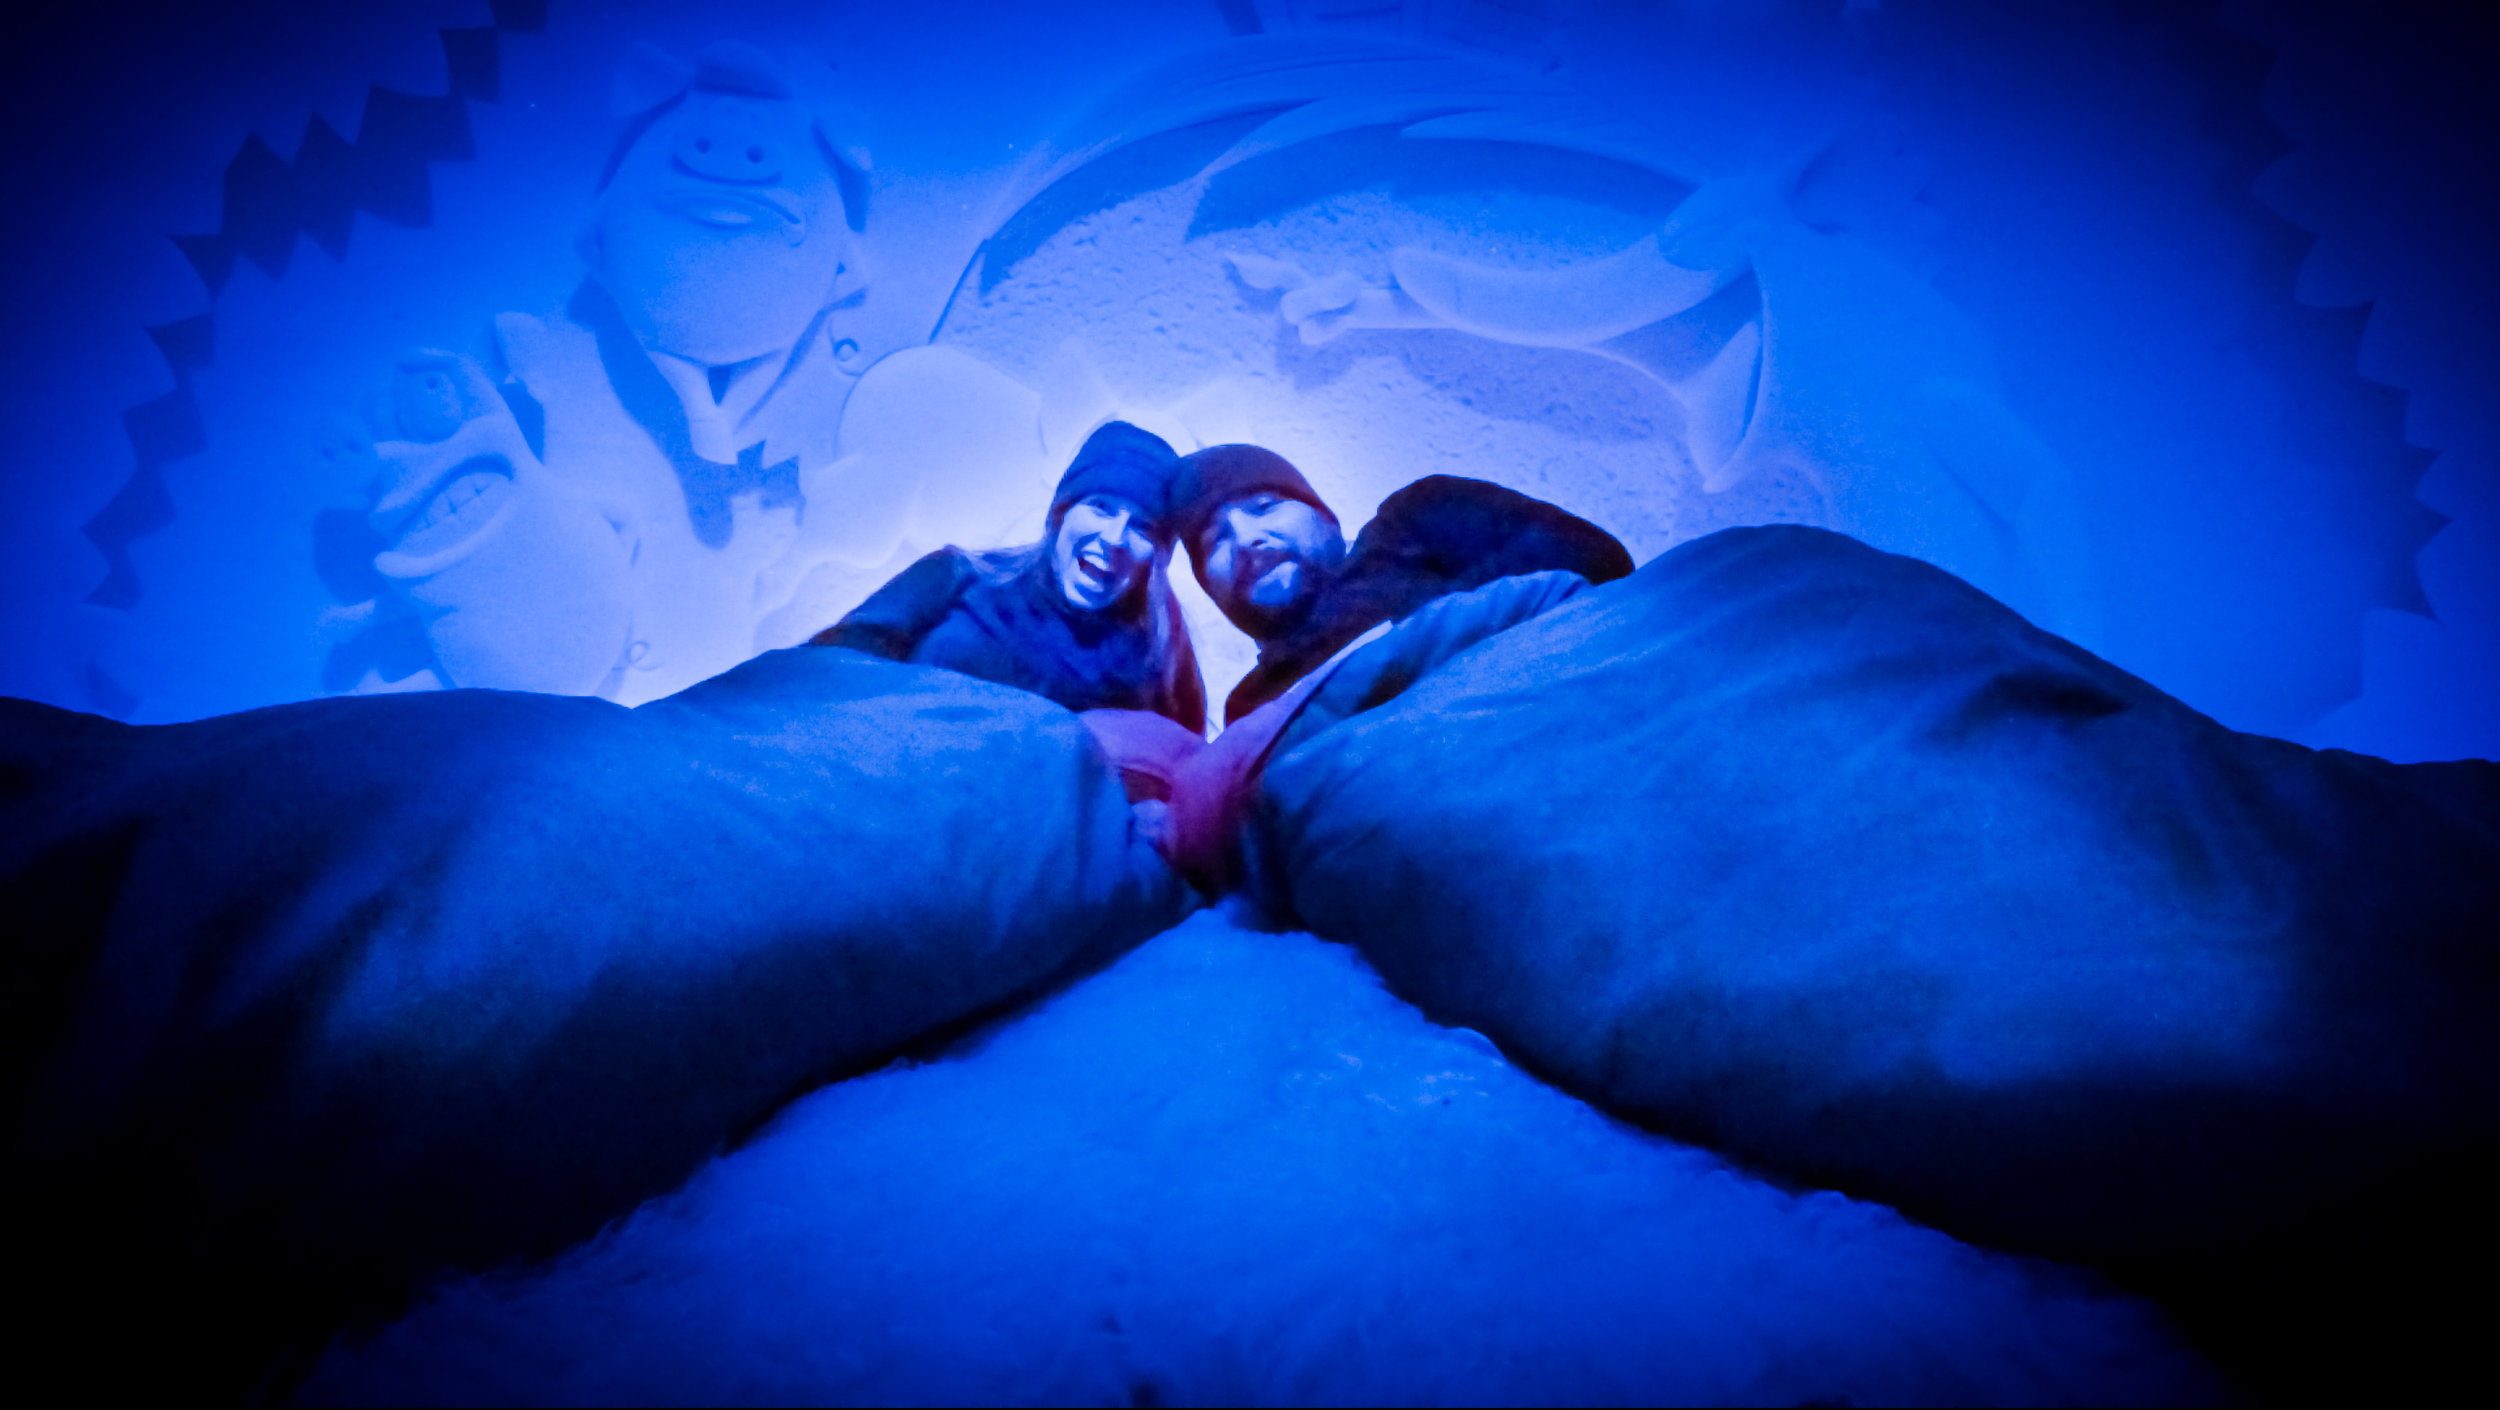 Couple Bundles In Sleeping Bags In A Snow Castle